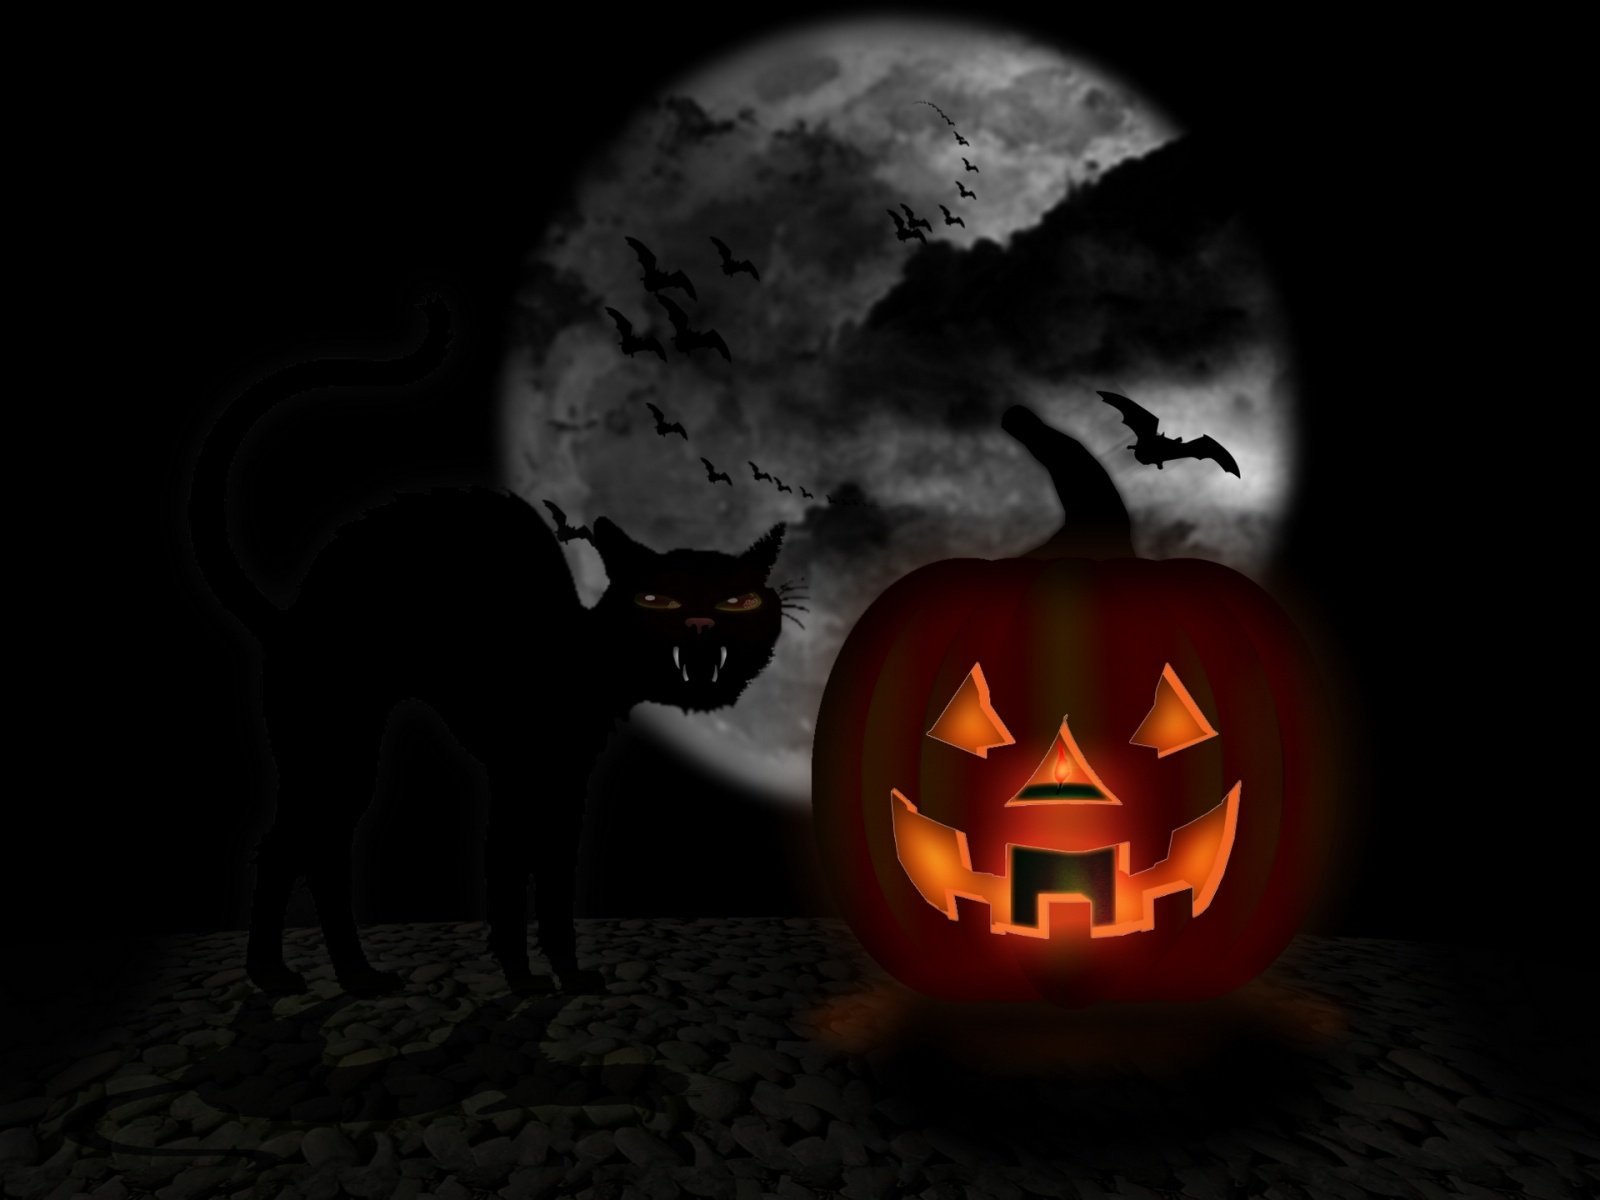 animated halloween wallpaper free 3 d - Free Halloween Sounds Downloads